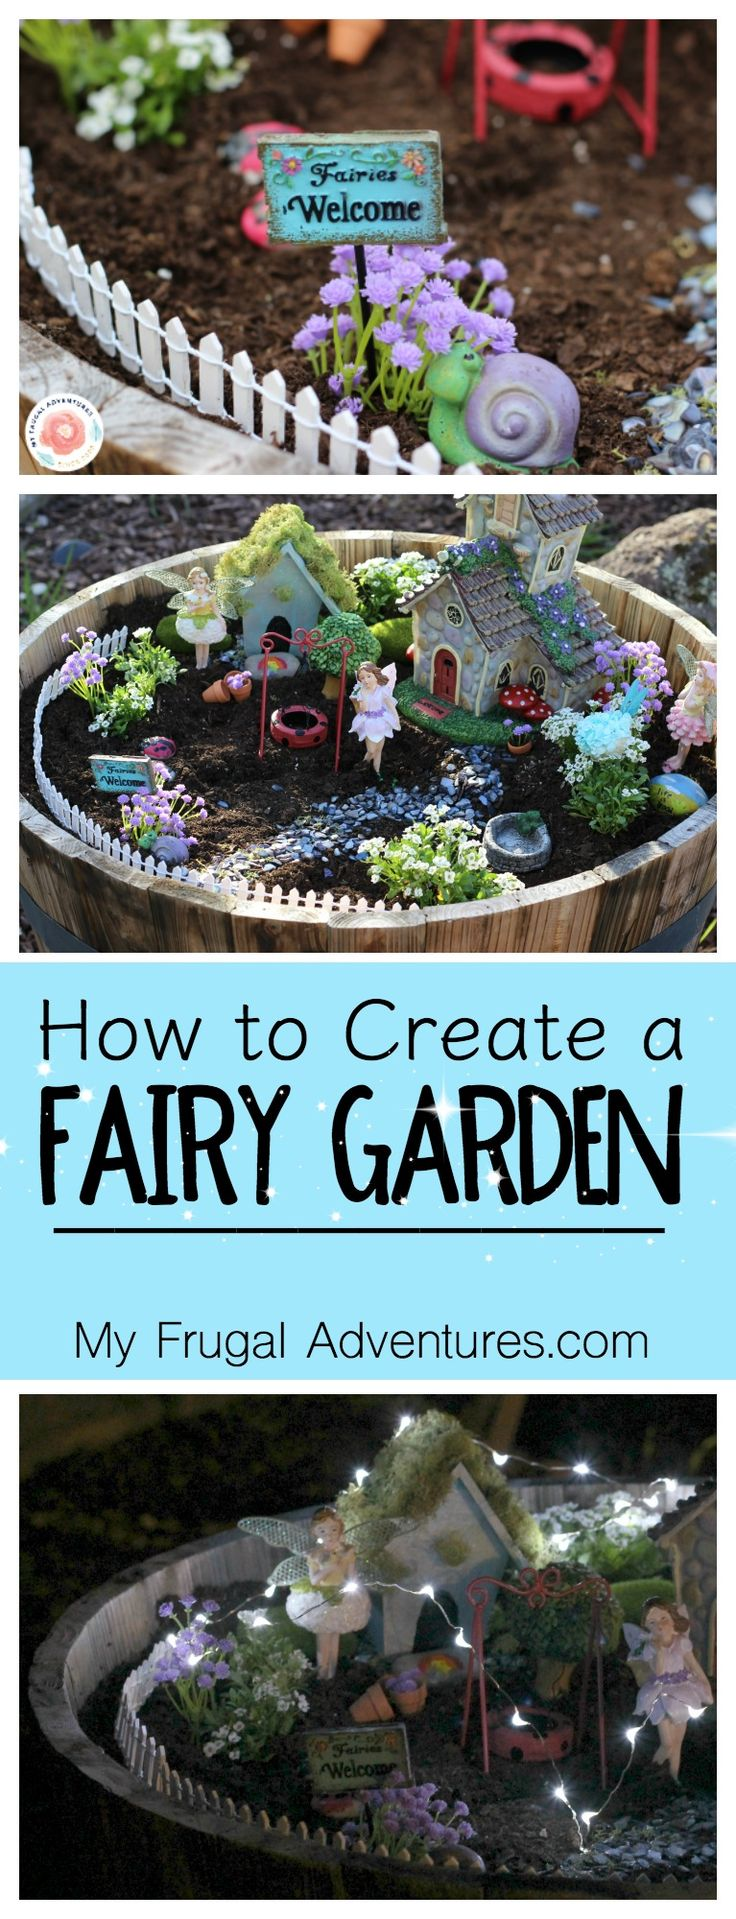 Fun and whimsical fairy garden for indoor or for outdoor use.  Such a fun children's craft to add a little magic to your yard.